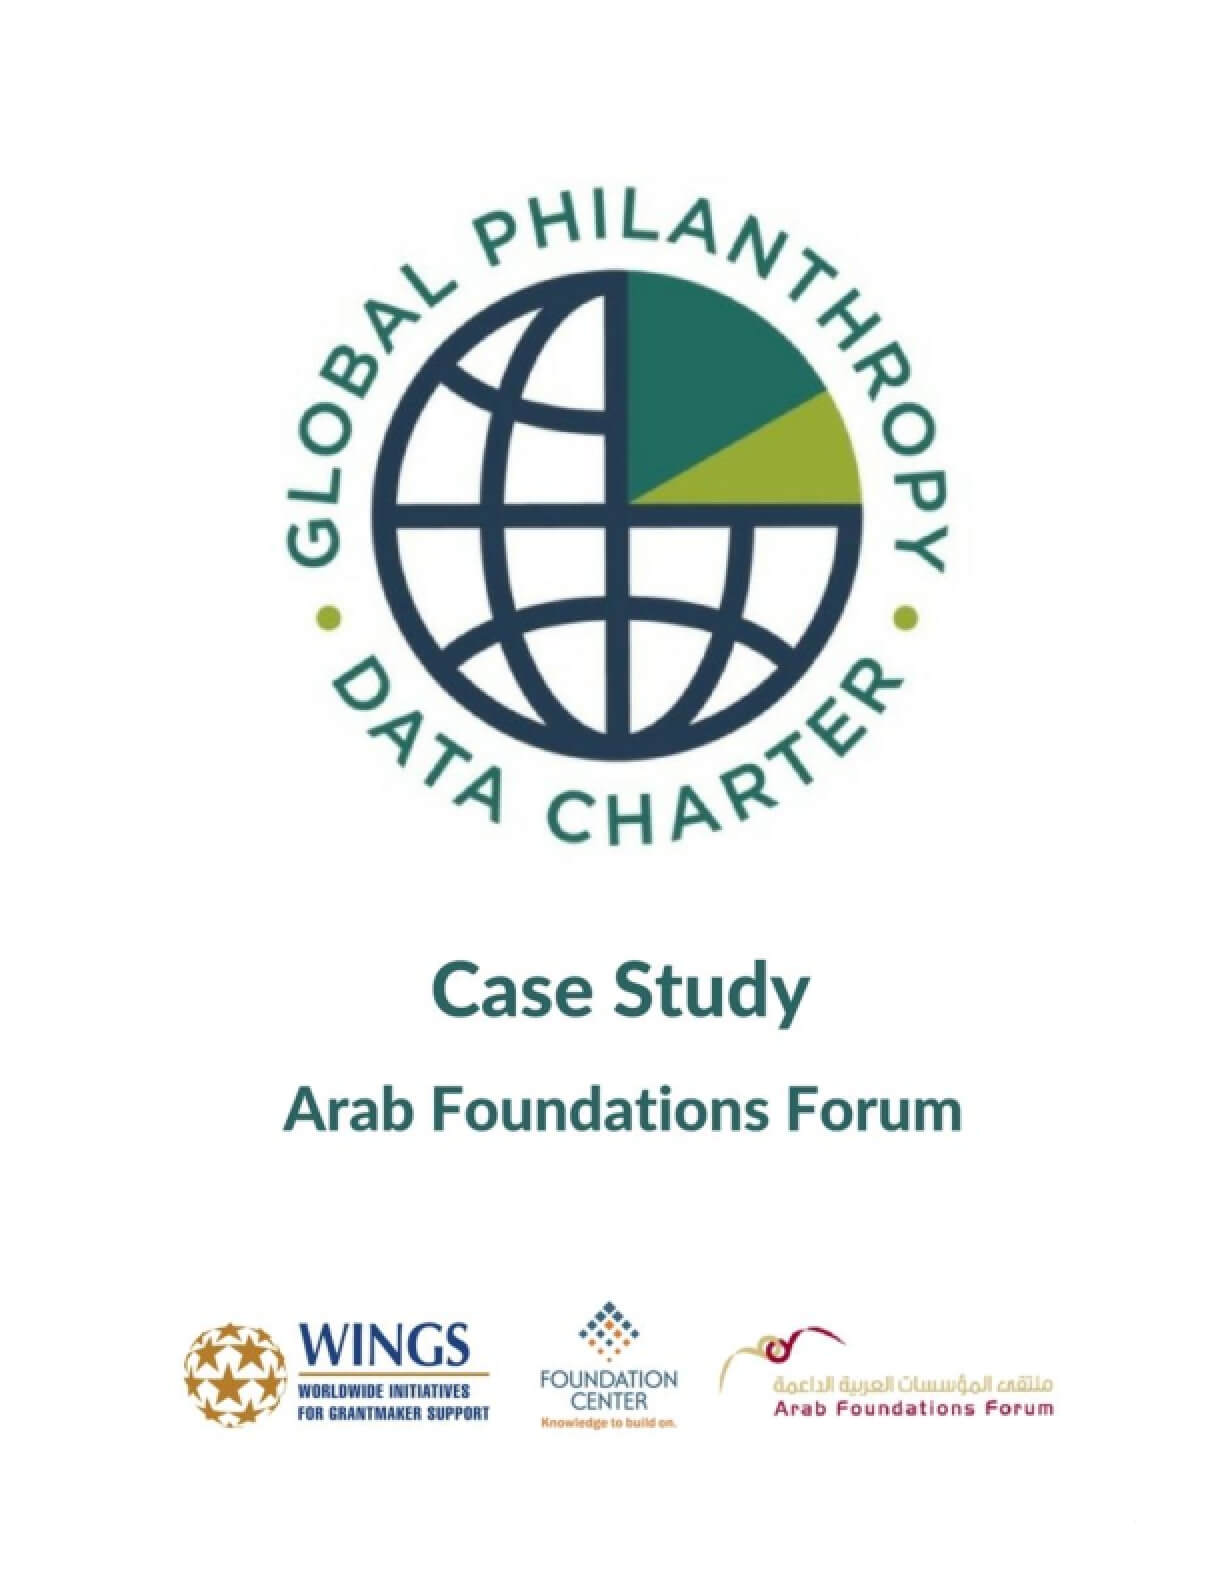 Global Philanthropy Data Charter - Arab Foundations Forum Case Study